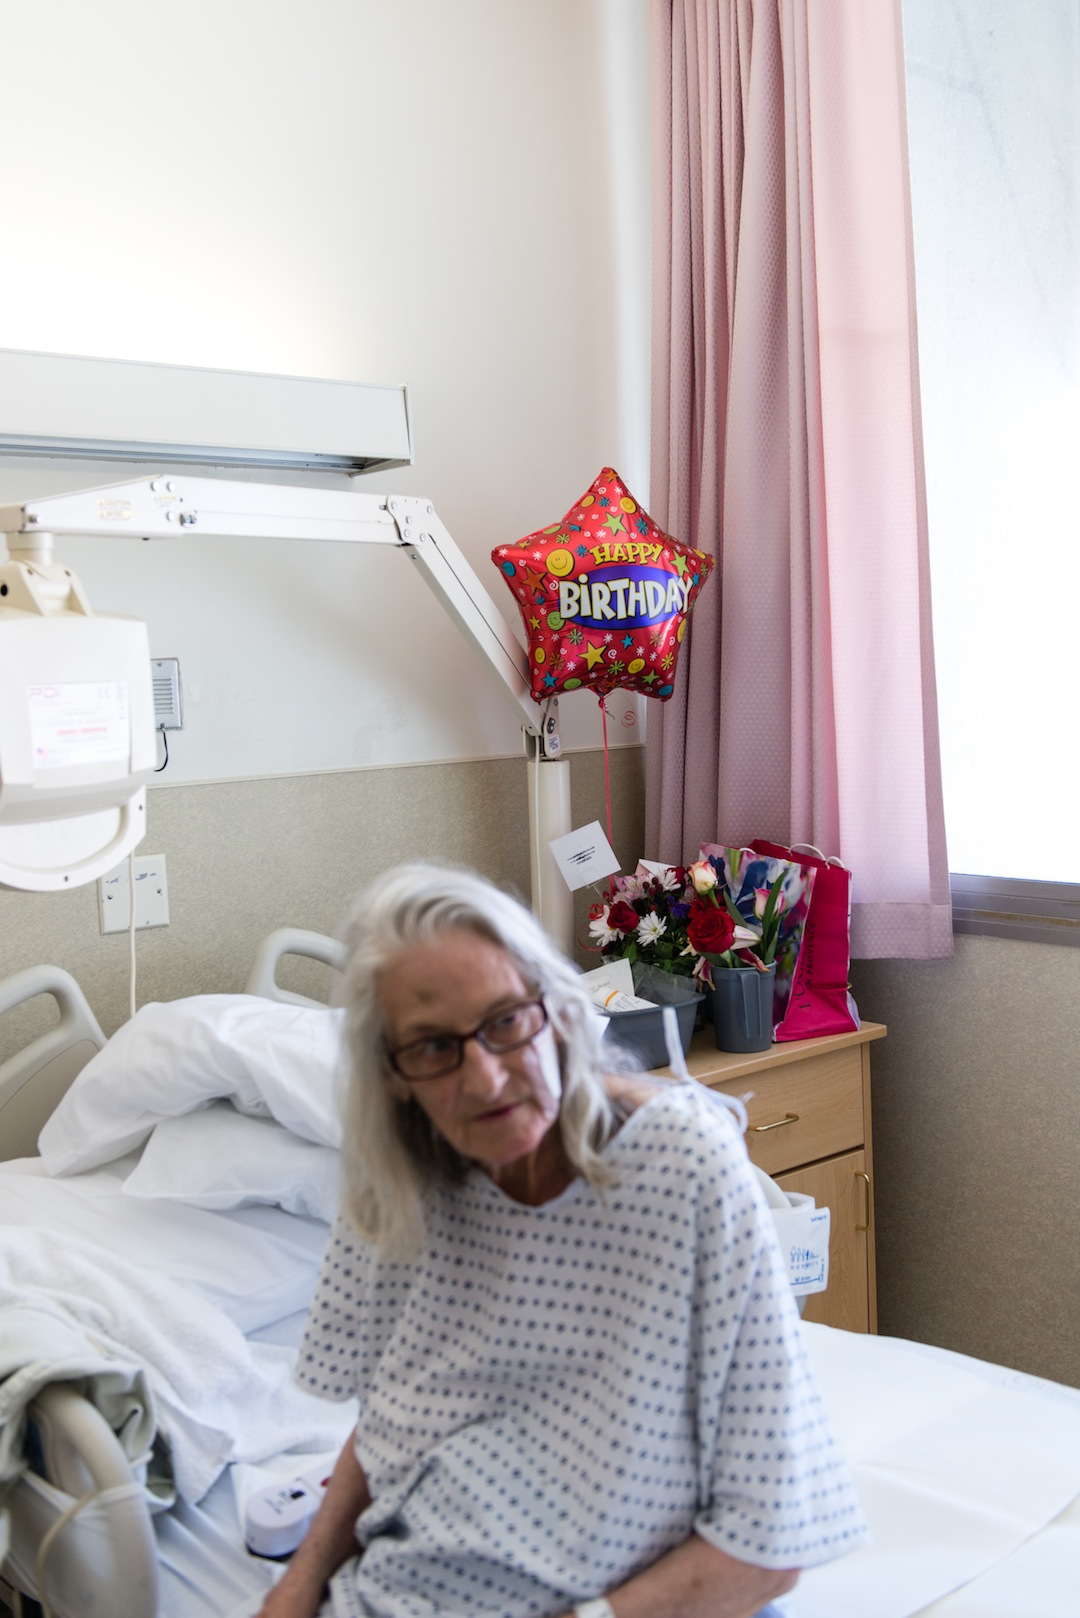 Prochazka celebrated her birthday during her stay at the hospital. She was admitted to the hospital in March after injuring herself in a fall. (Heidi de Marco/KHN)